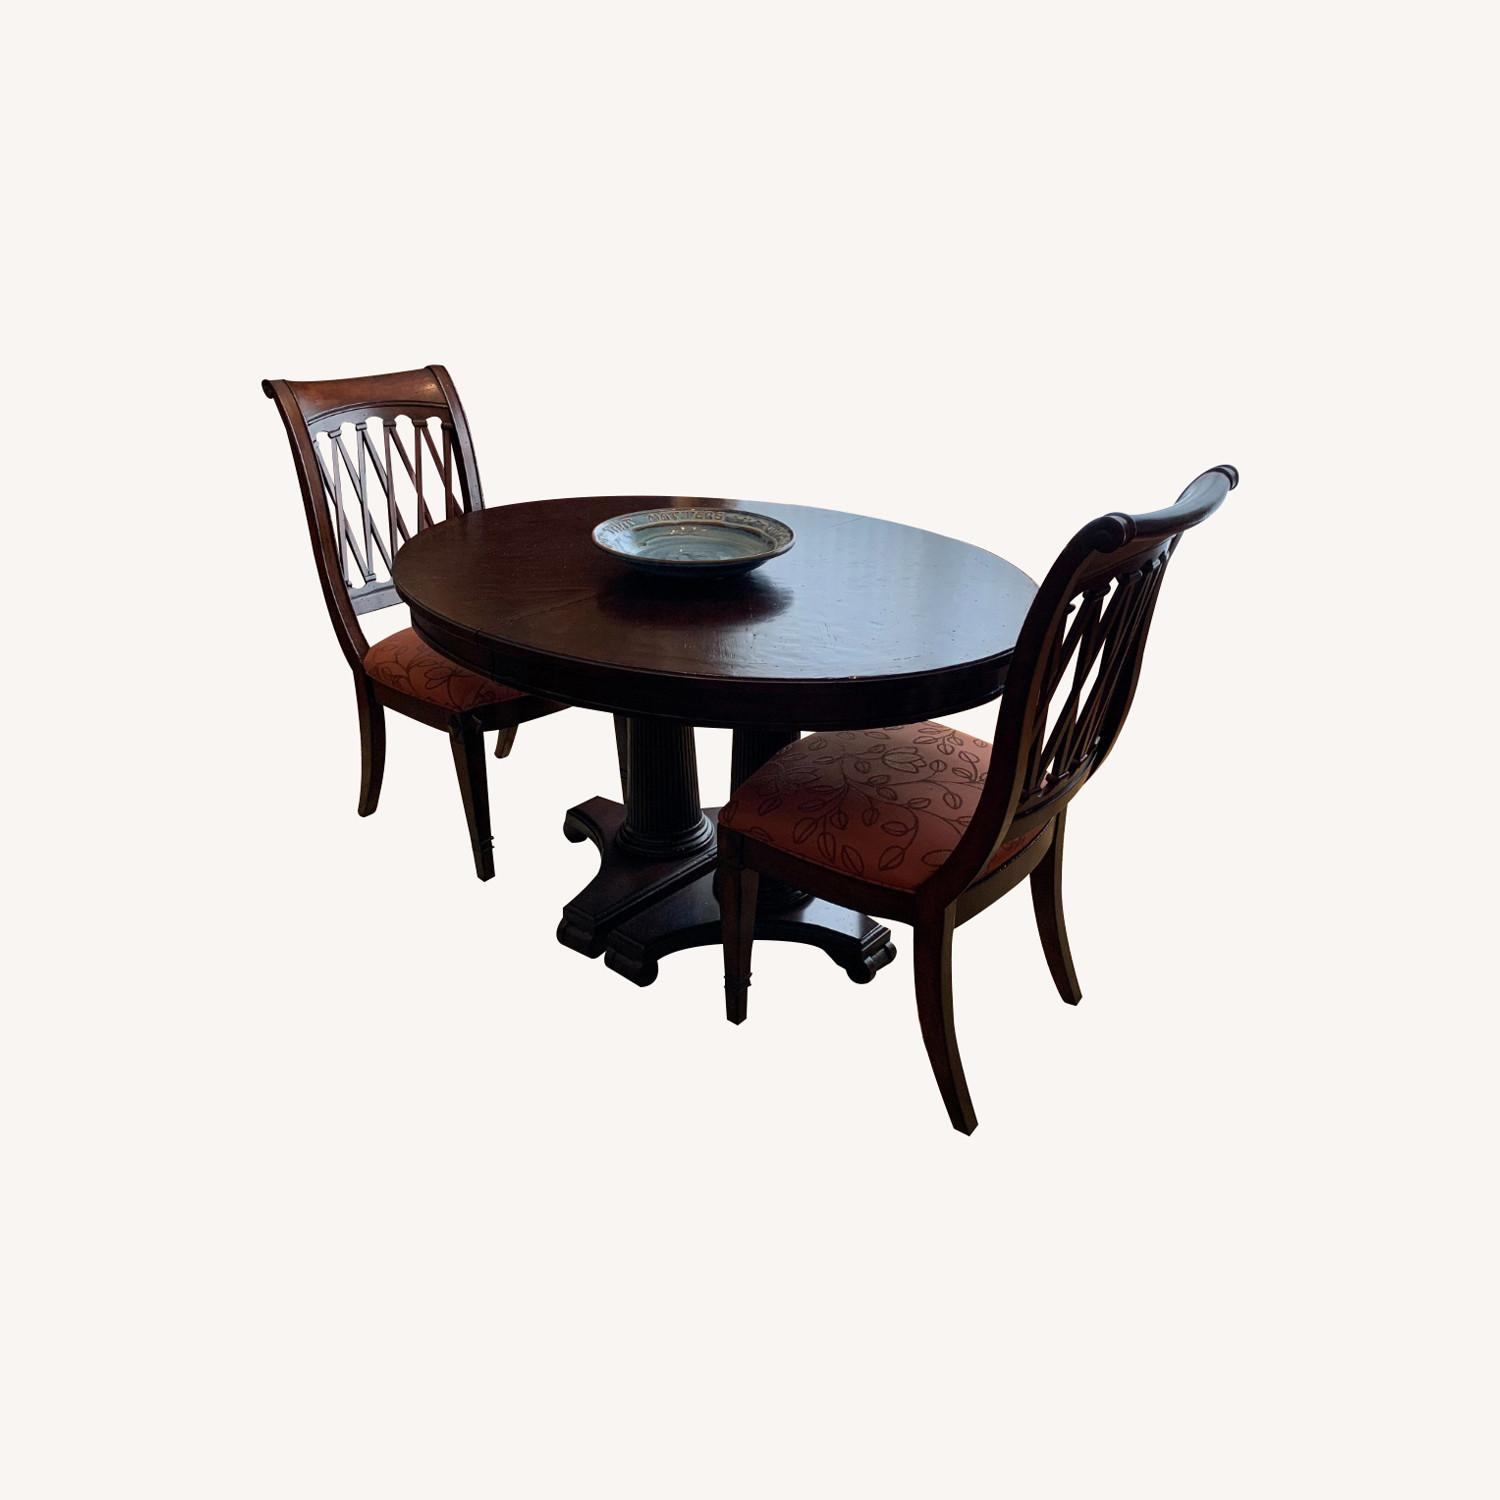 Drexel Solid Wood Dining Table with 6 chairs - image-0